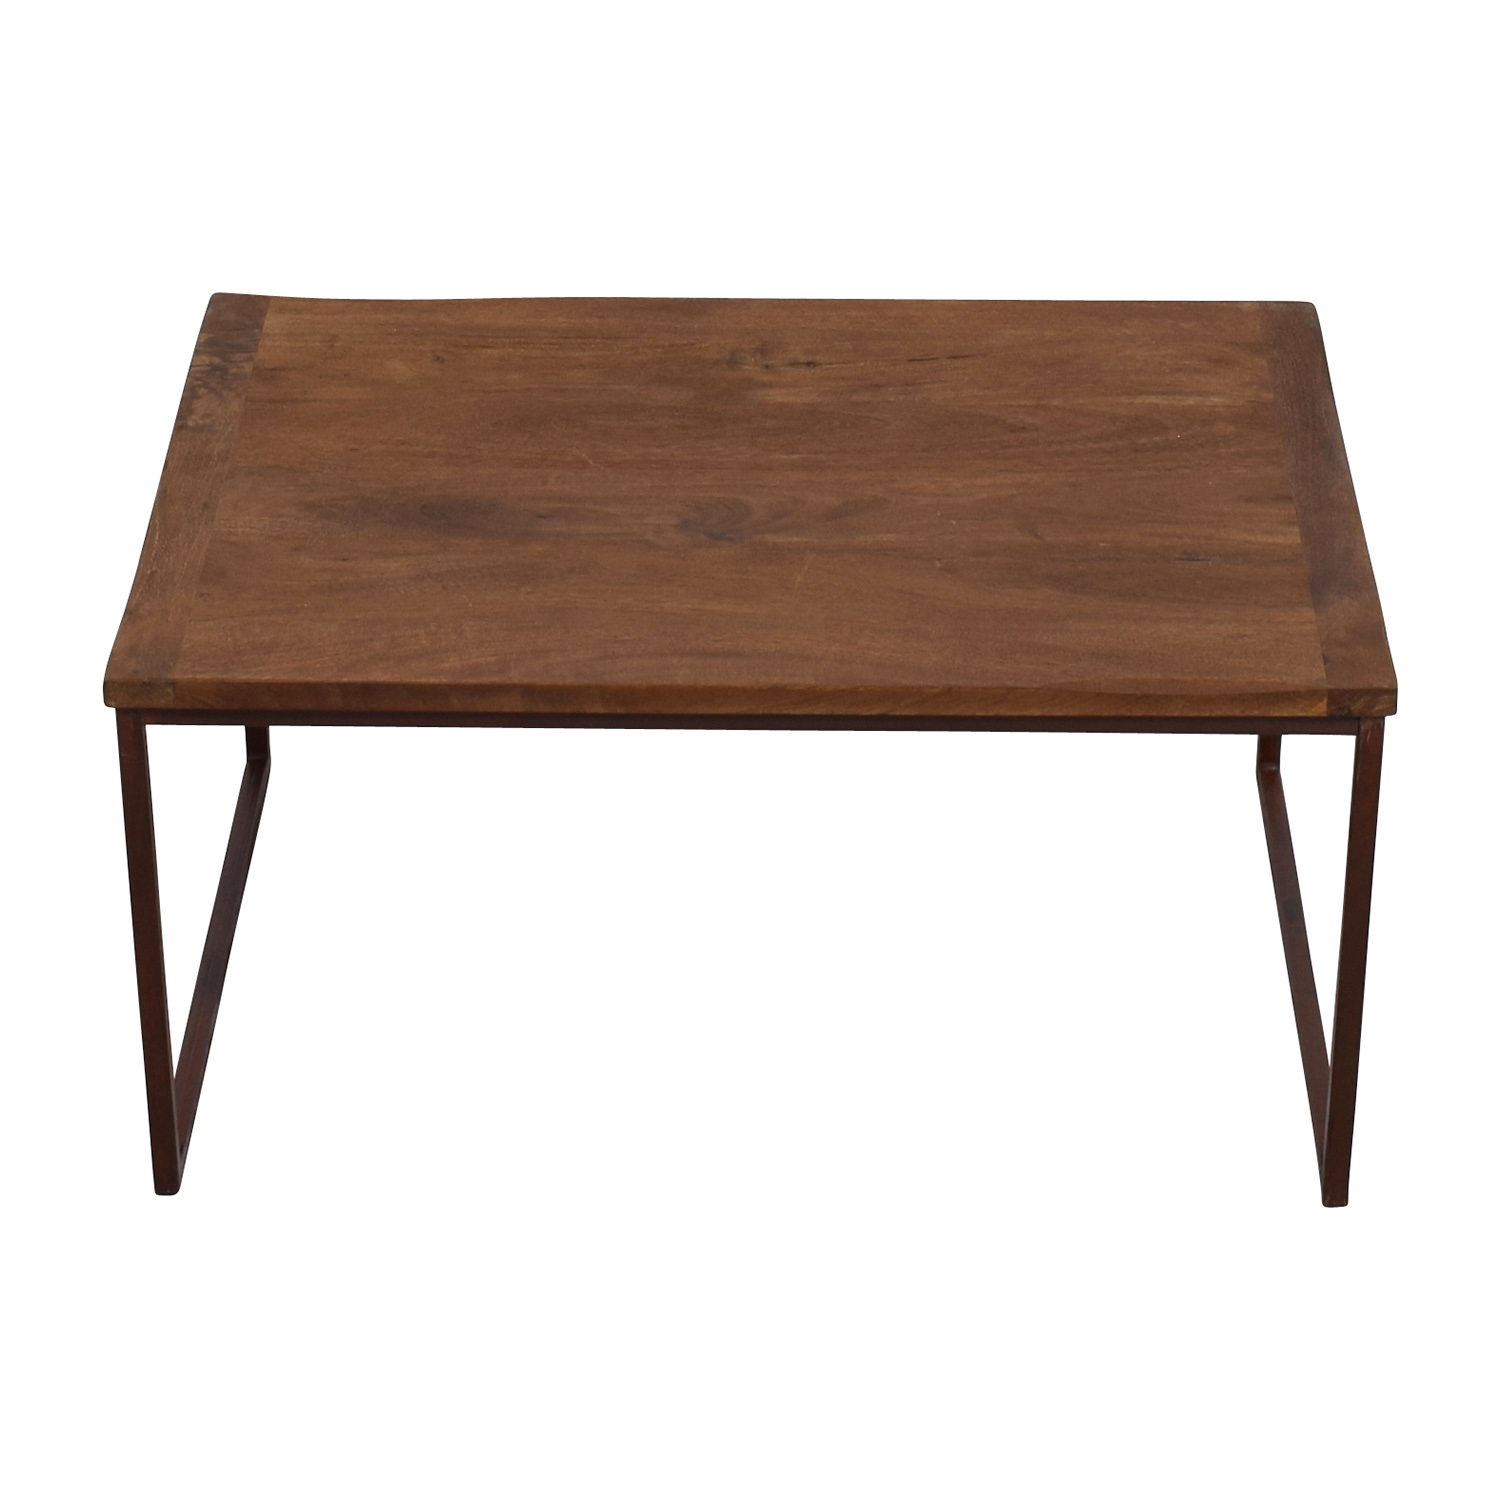 shop Pottery Barn Wood and Metal Rectangle Coffee Table Pottery Barn